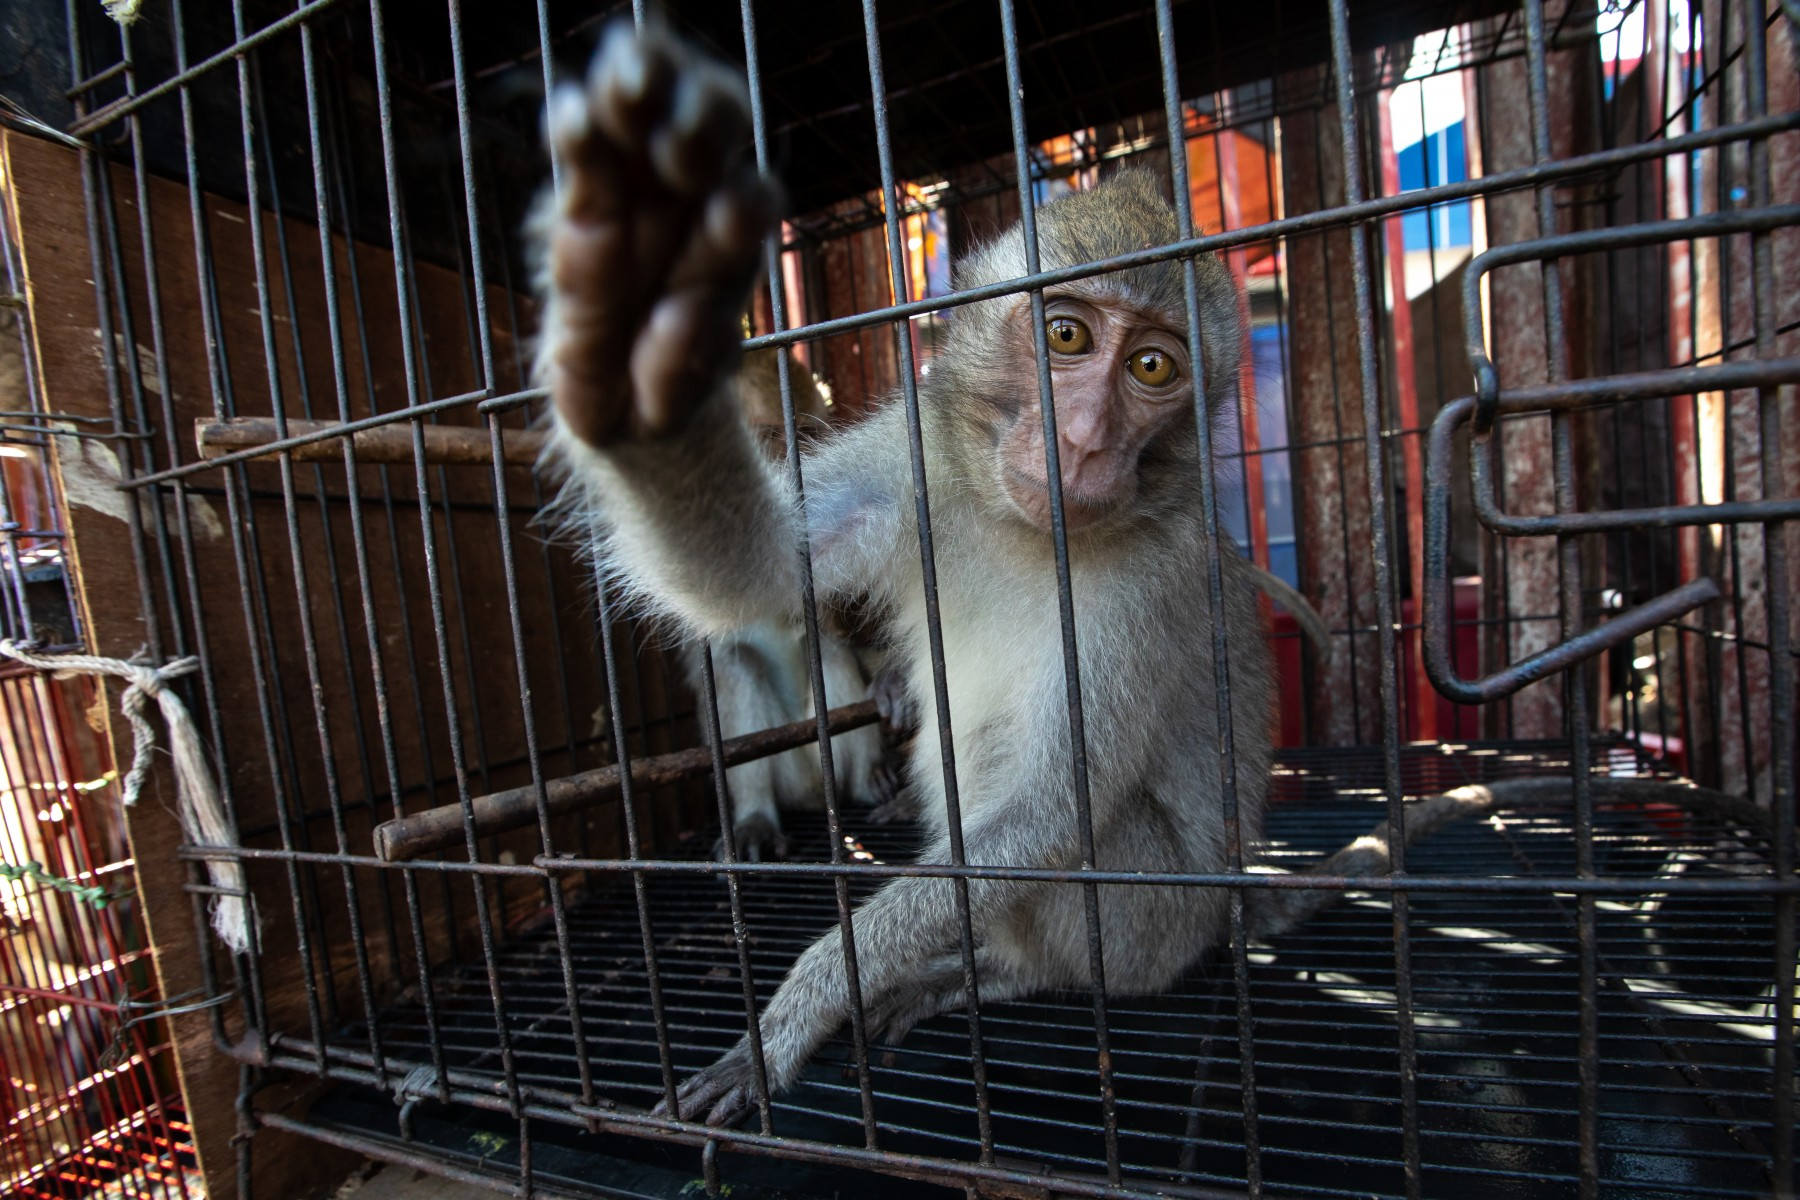 A macaque at a market in Jakarta, Indonesia. Credit Line: World Animal Protection / Aaron Gekoski